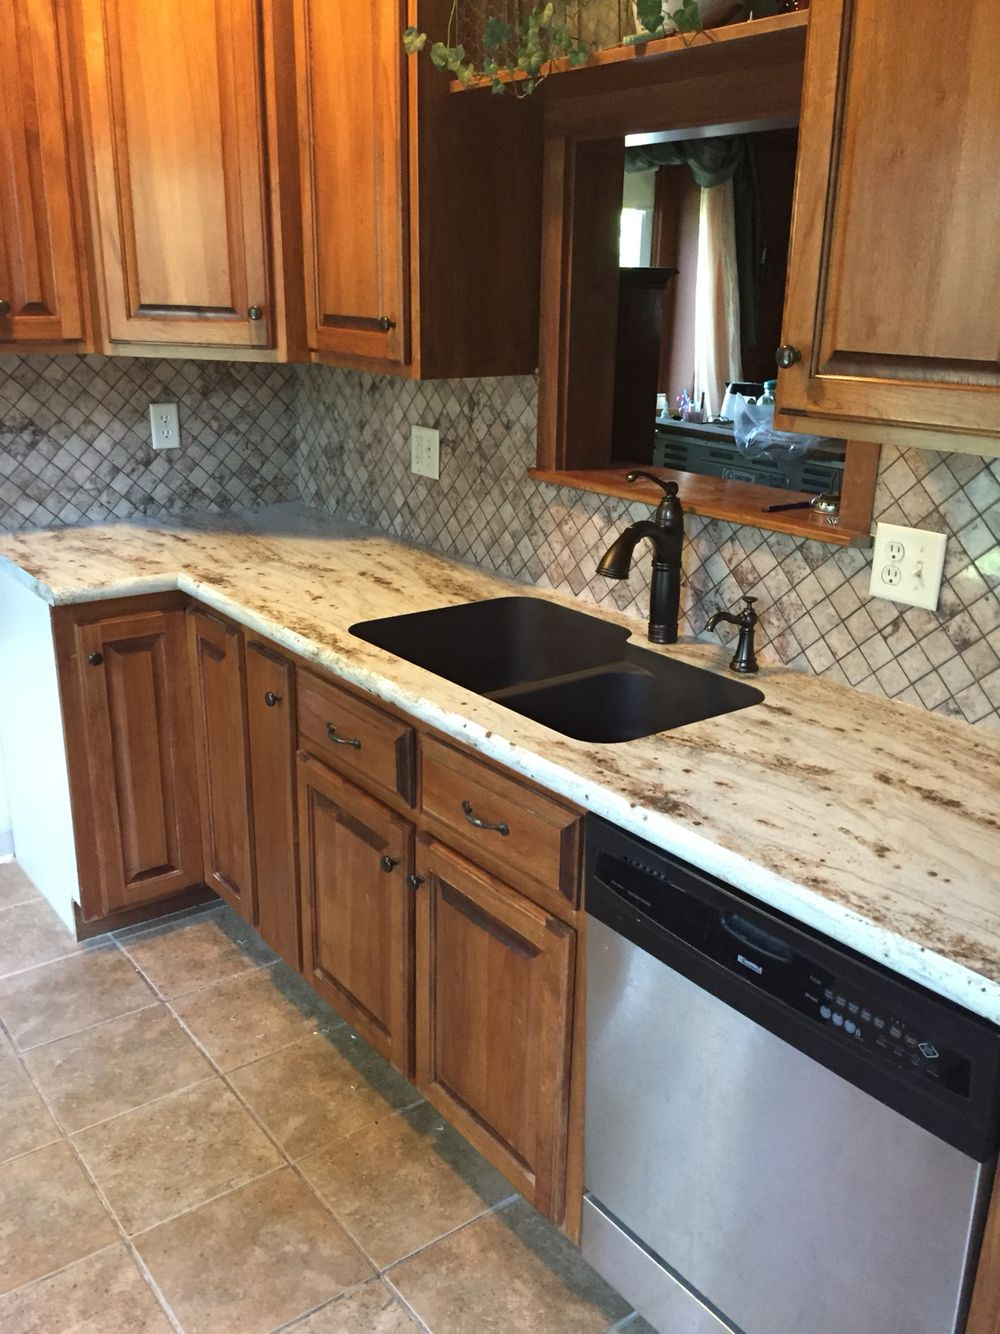 Hd Formica Countertops River Gold Formica Countertops With Tyvarian Tile Backsplash My